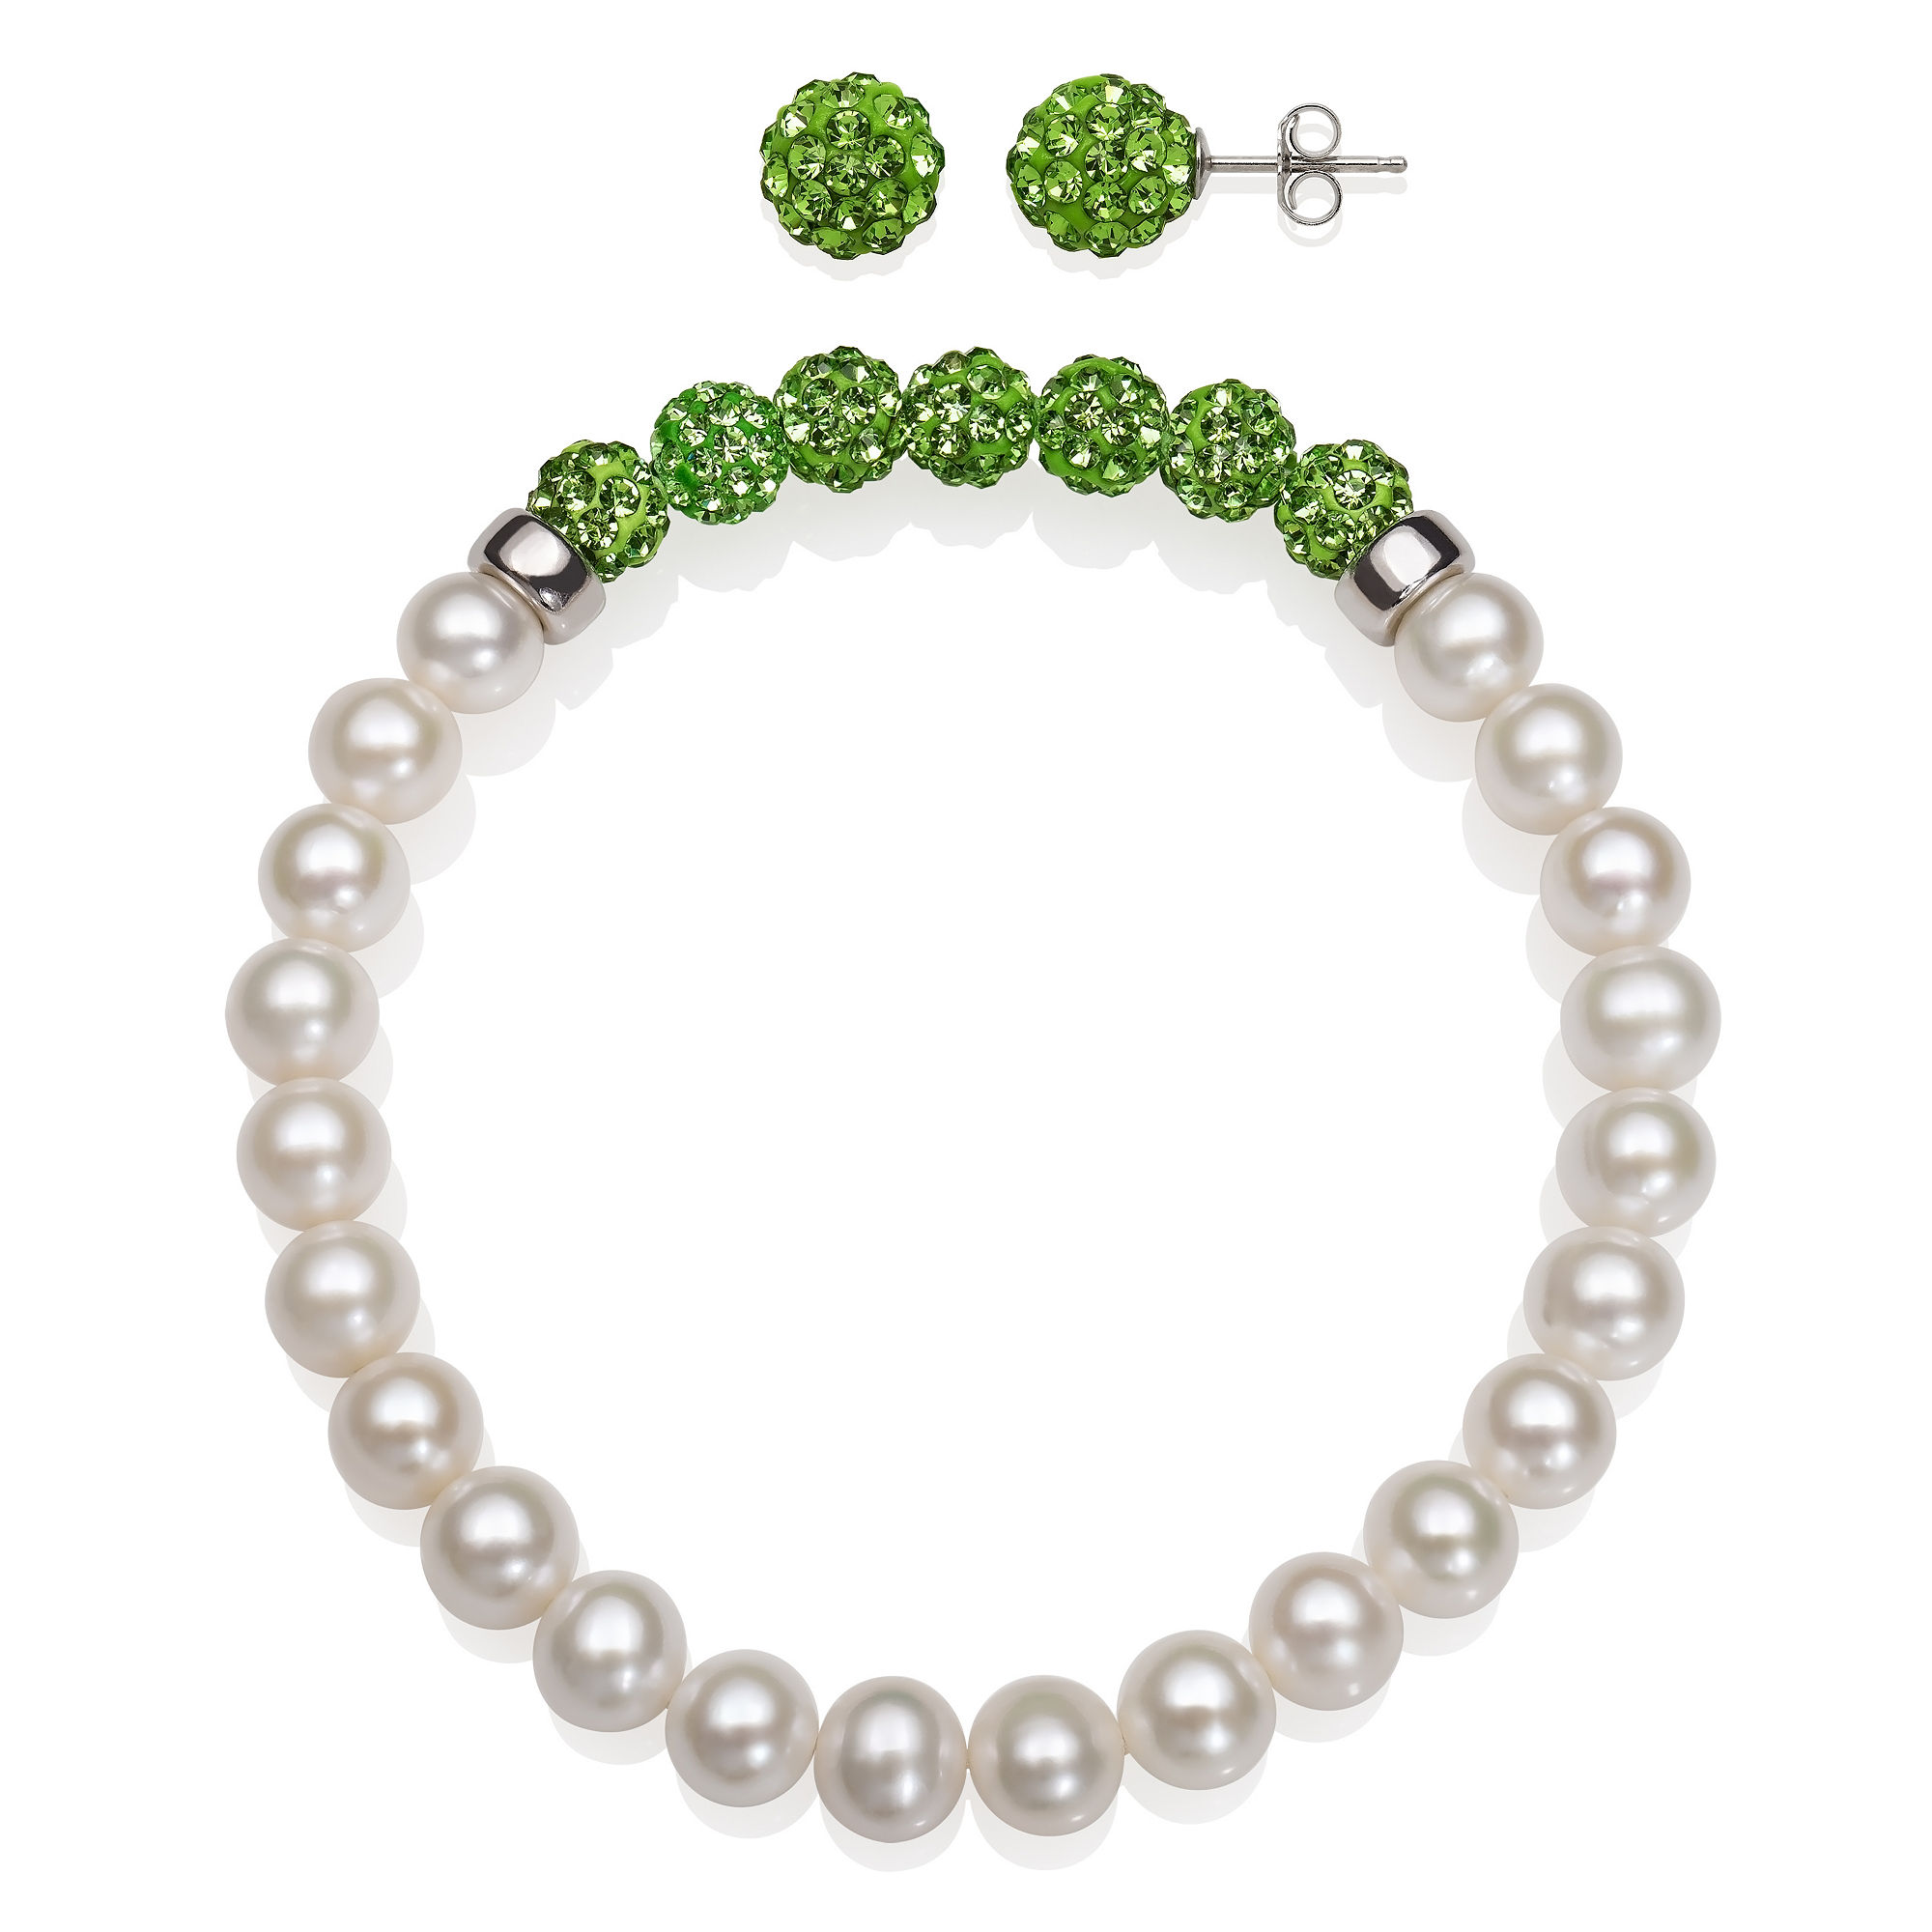 6-7Mm Cultured Freshwater Pearl And 6Mm Green Lab Created Crystal Bead Sterling Silver Earring And Bracelet Set